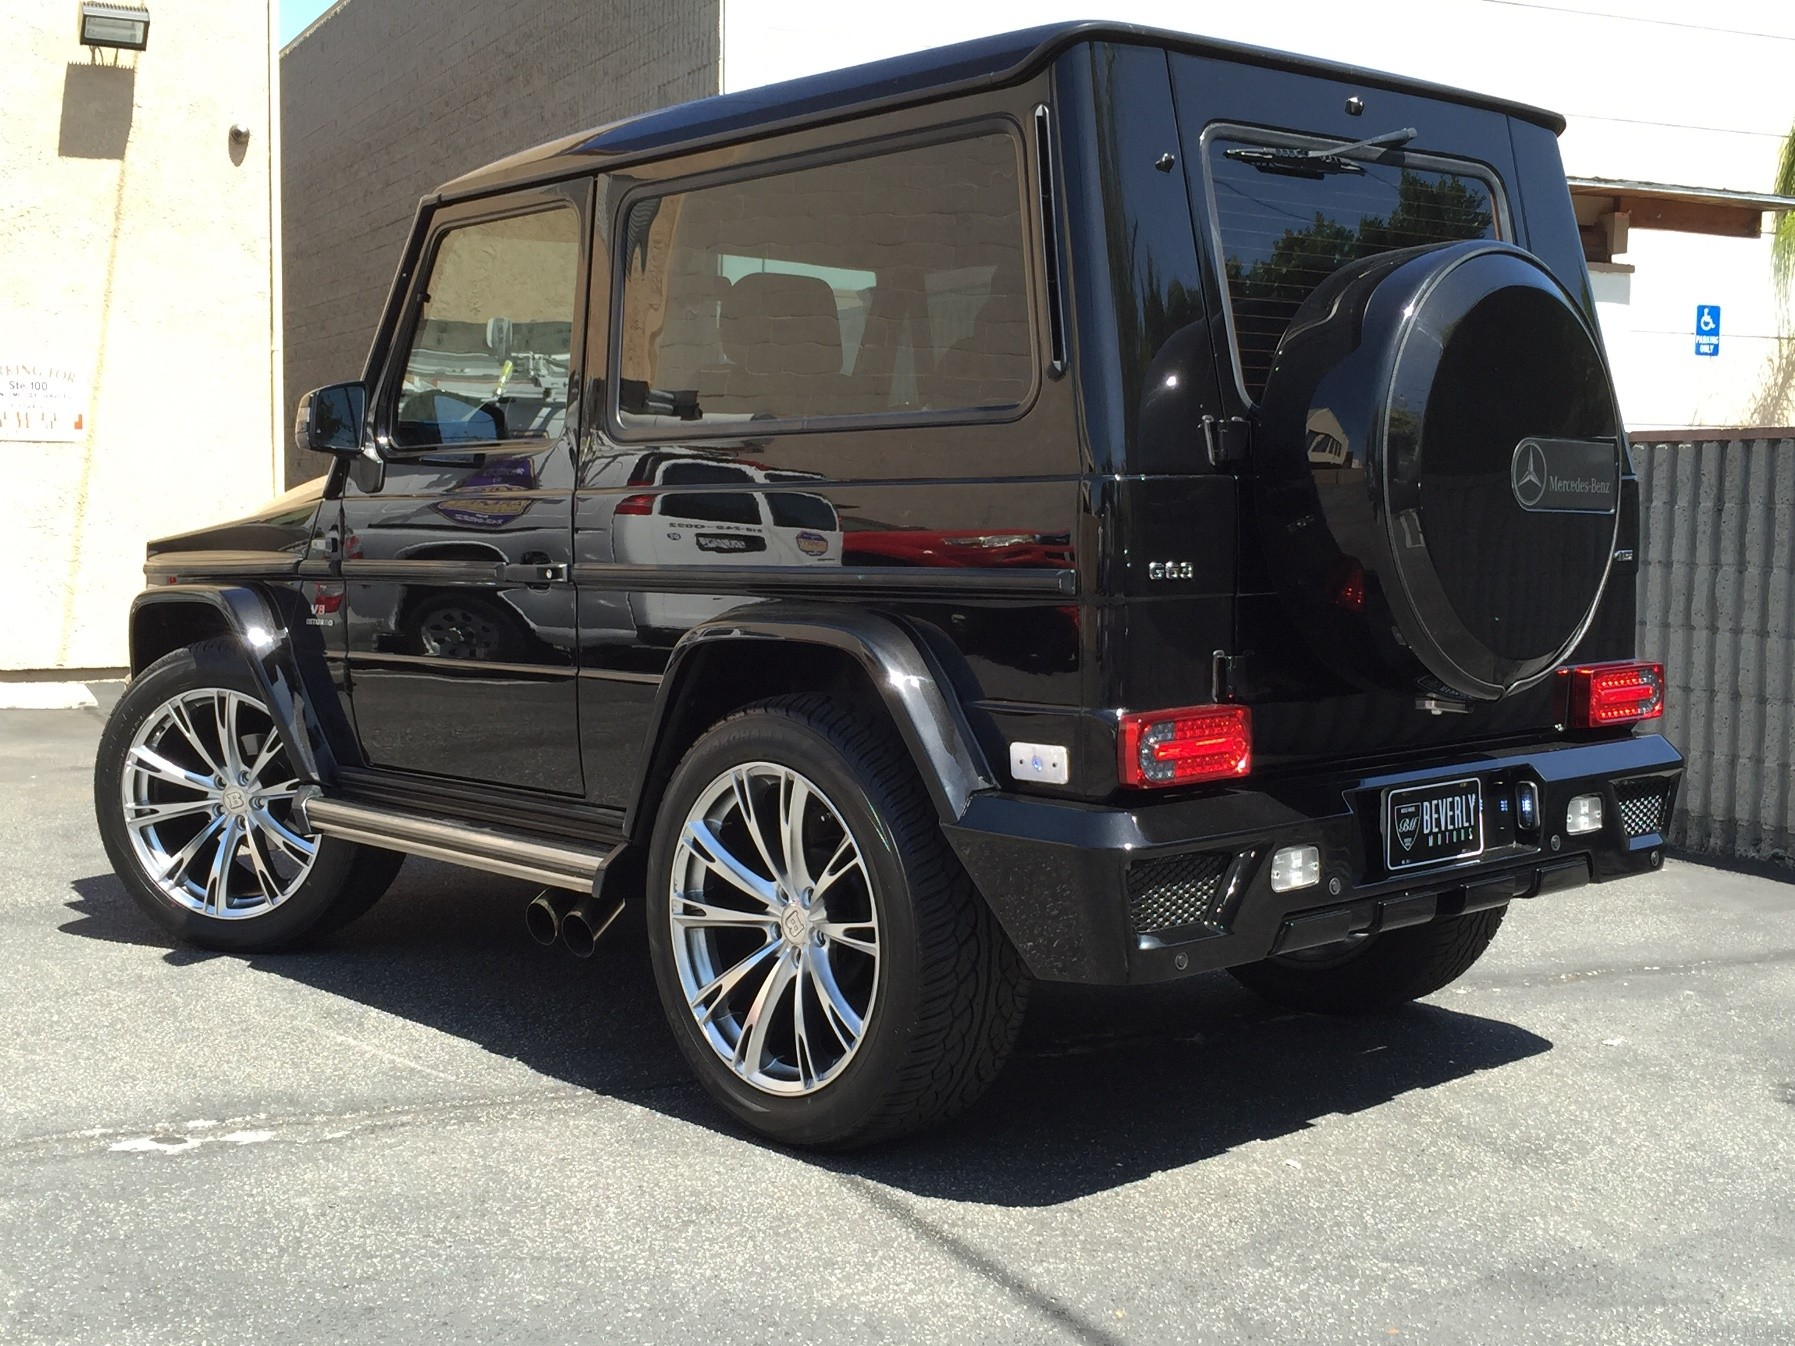 2001 mercedes benz g320 coupe brabus for sale beverly motors inc glendale auto leasing and. Black Bedroom Furniture Sets. Home Design Ideas